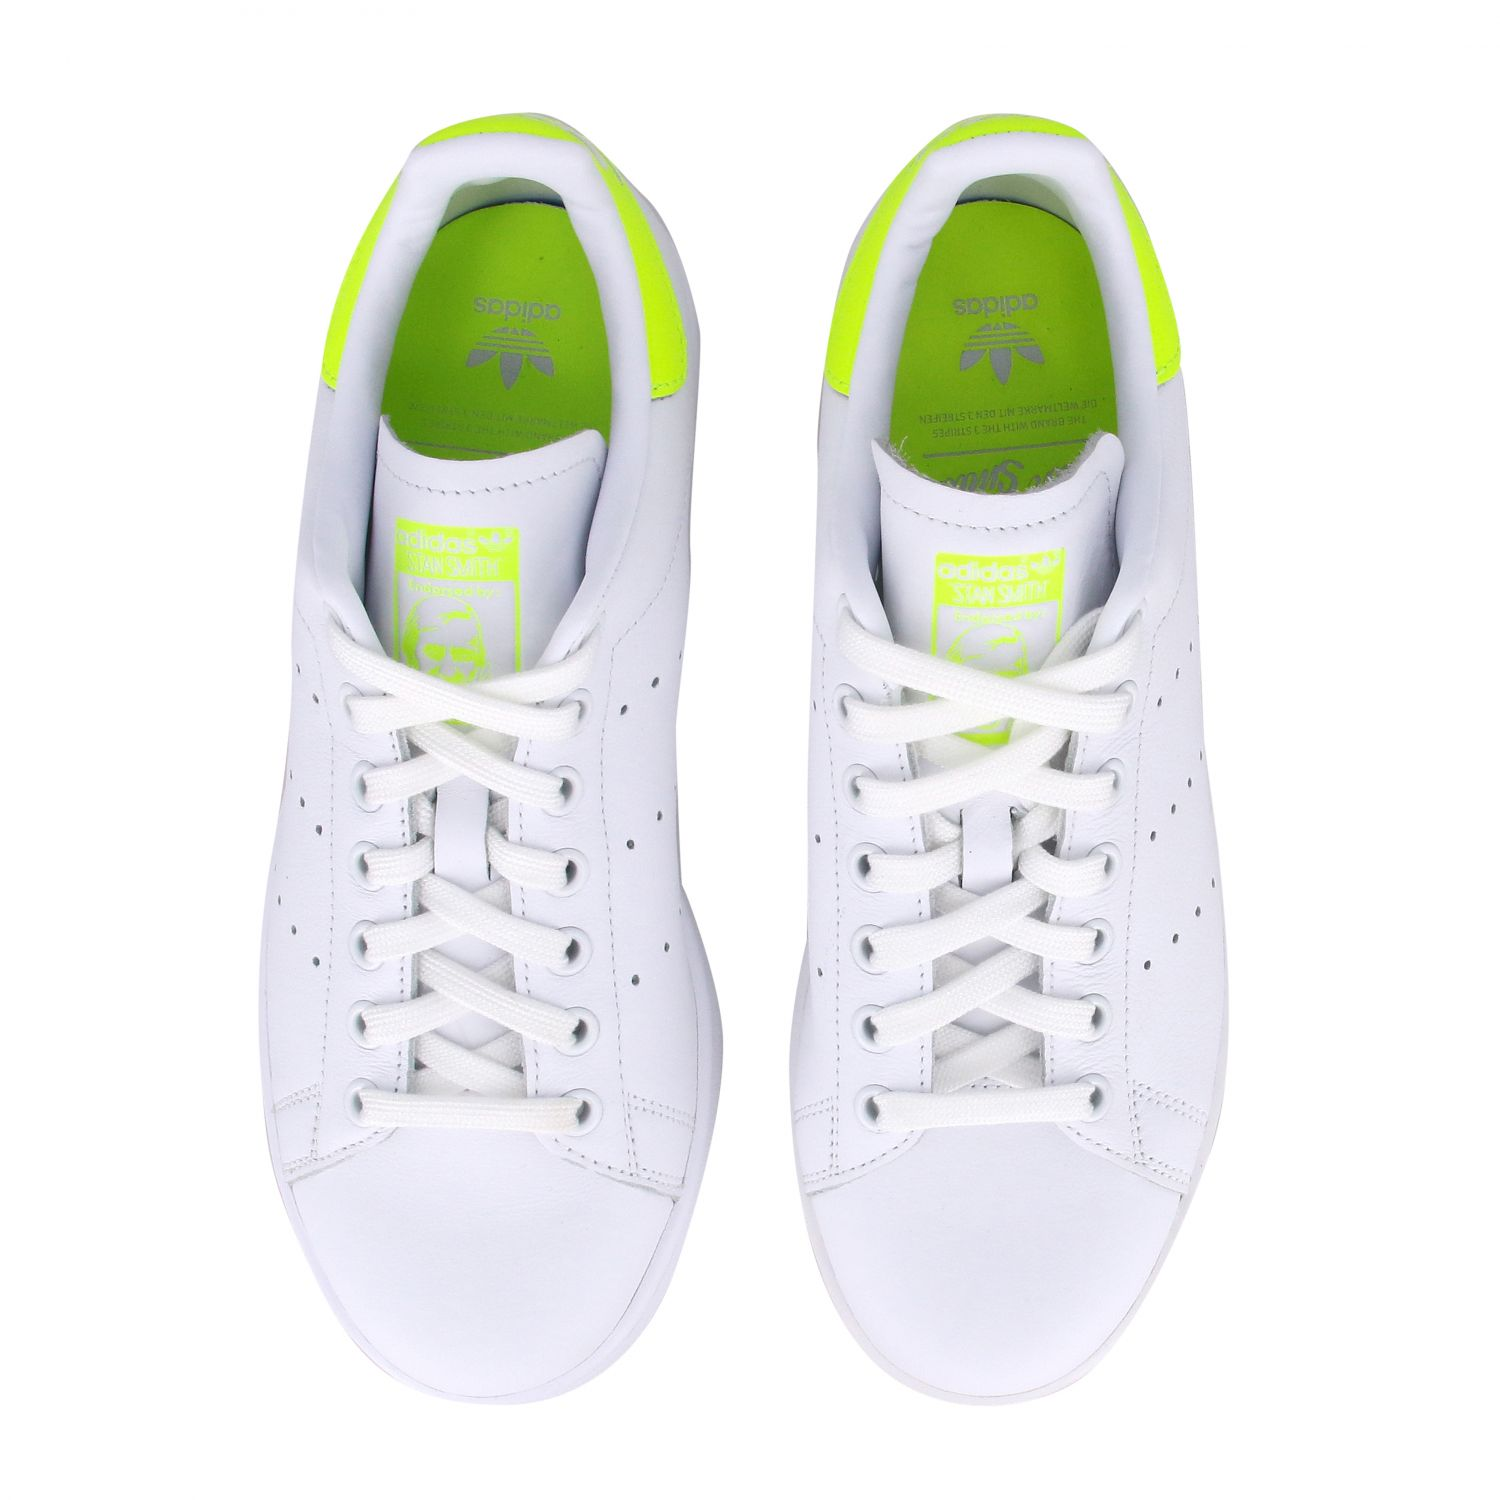 Sneakers Adidas Originals: Stan smith sneakers pelle tallone giallo ricamo bianco 3